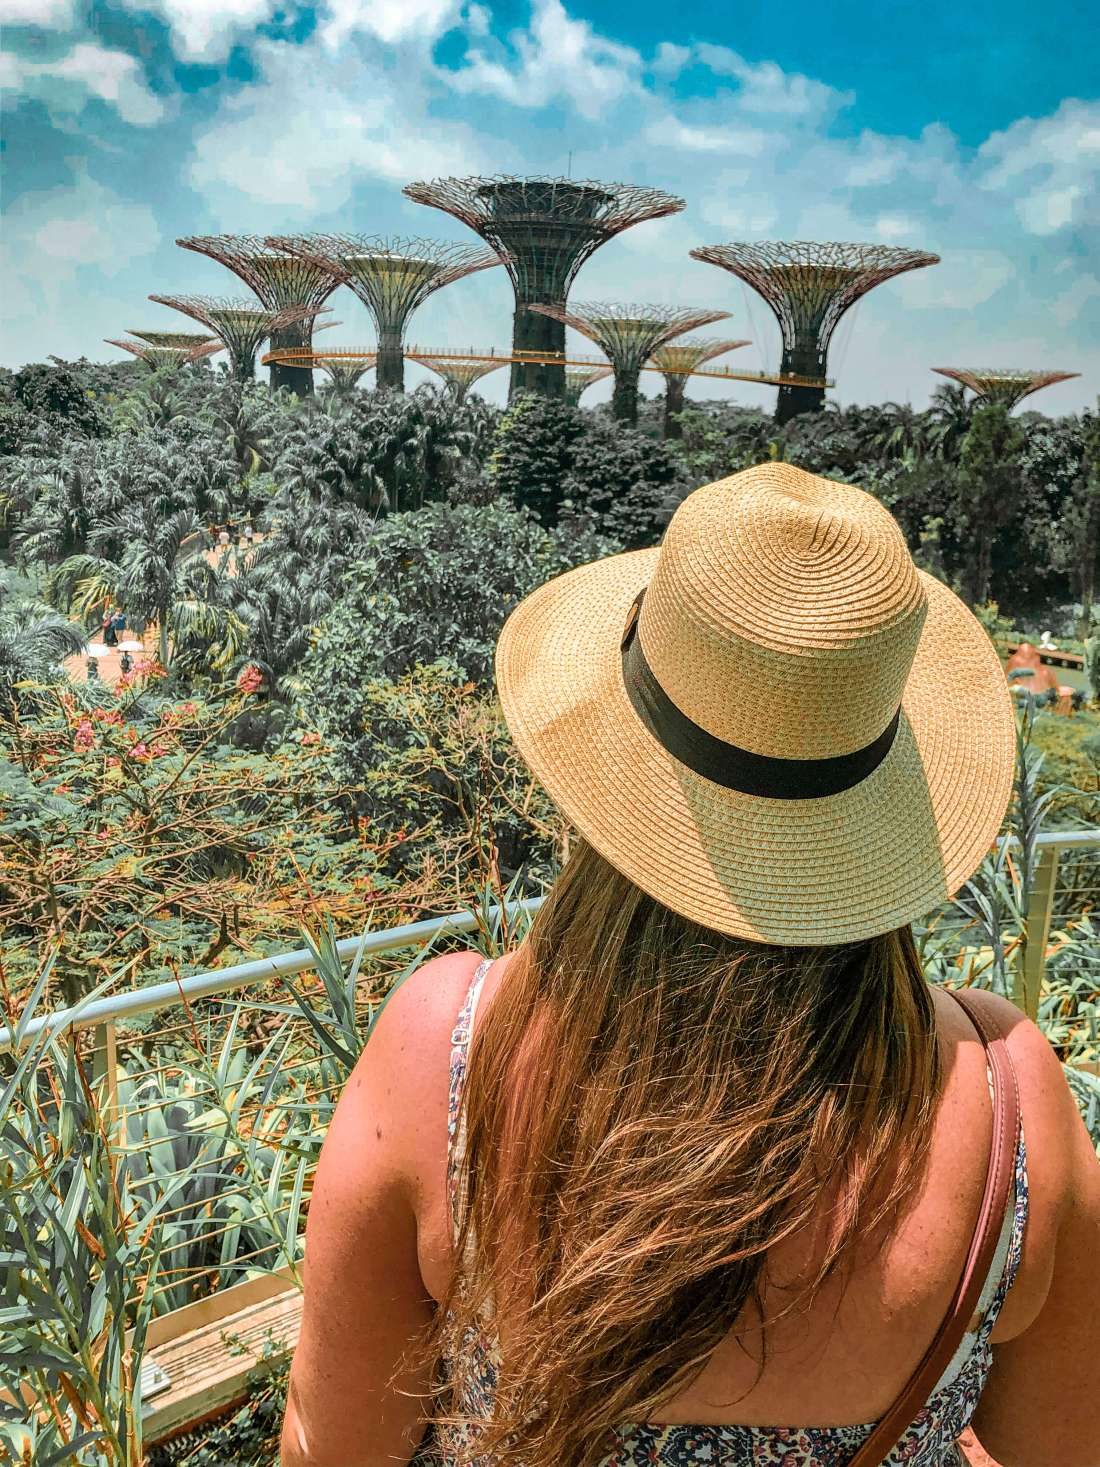 Simone at Gardens by the Bay Singapore